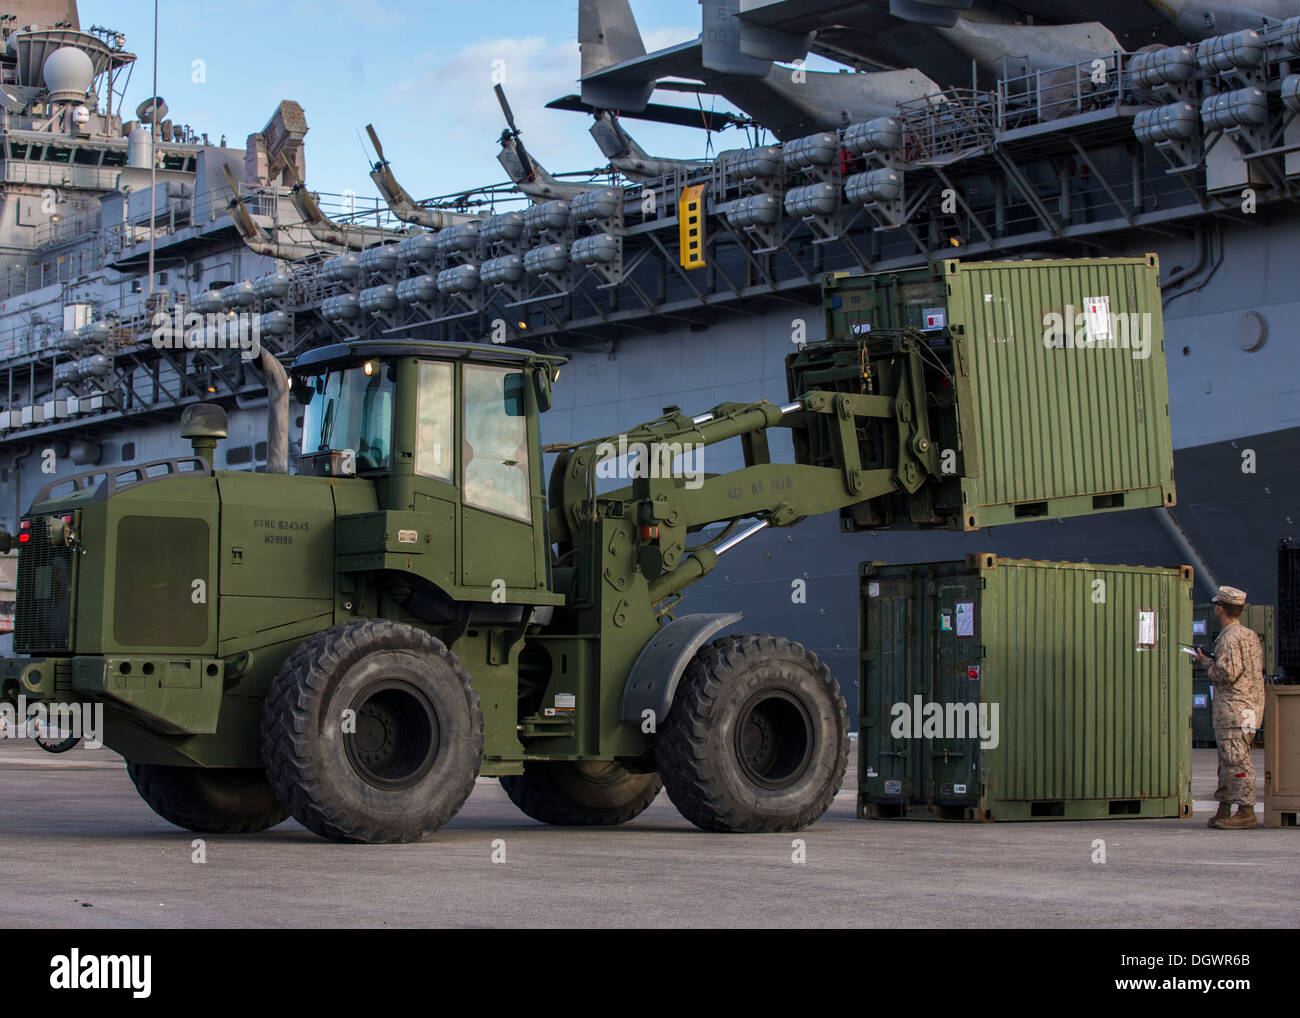 Shipping containers are stacked after being inspected by U.S. Customs agents during the 26th Marine Expeditionary Unit's (MEU) wash down in Naval Station Rota, Spain, Oct. 19, 2013. The 26th MEU is a Marine Air-Ground Task Force forward-deployed to the U. - Stock Image